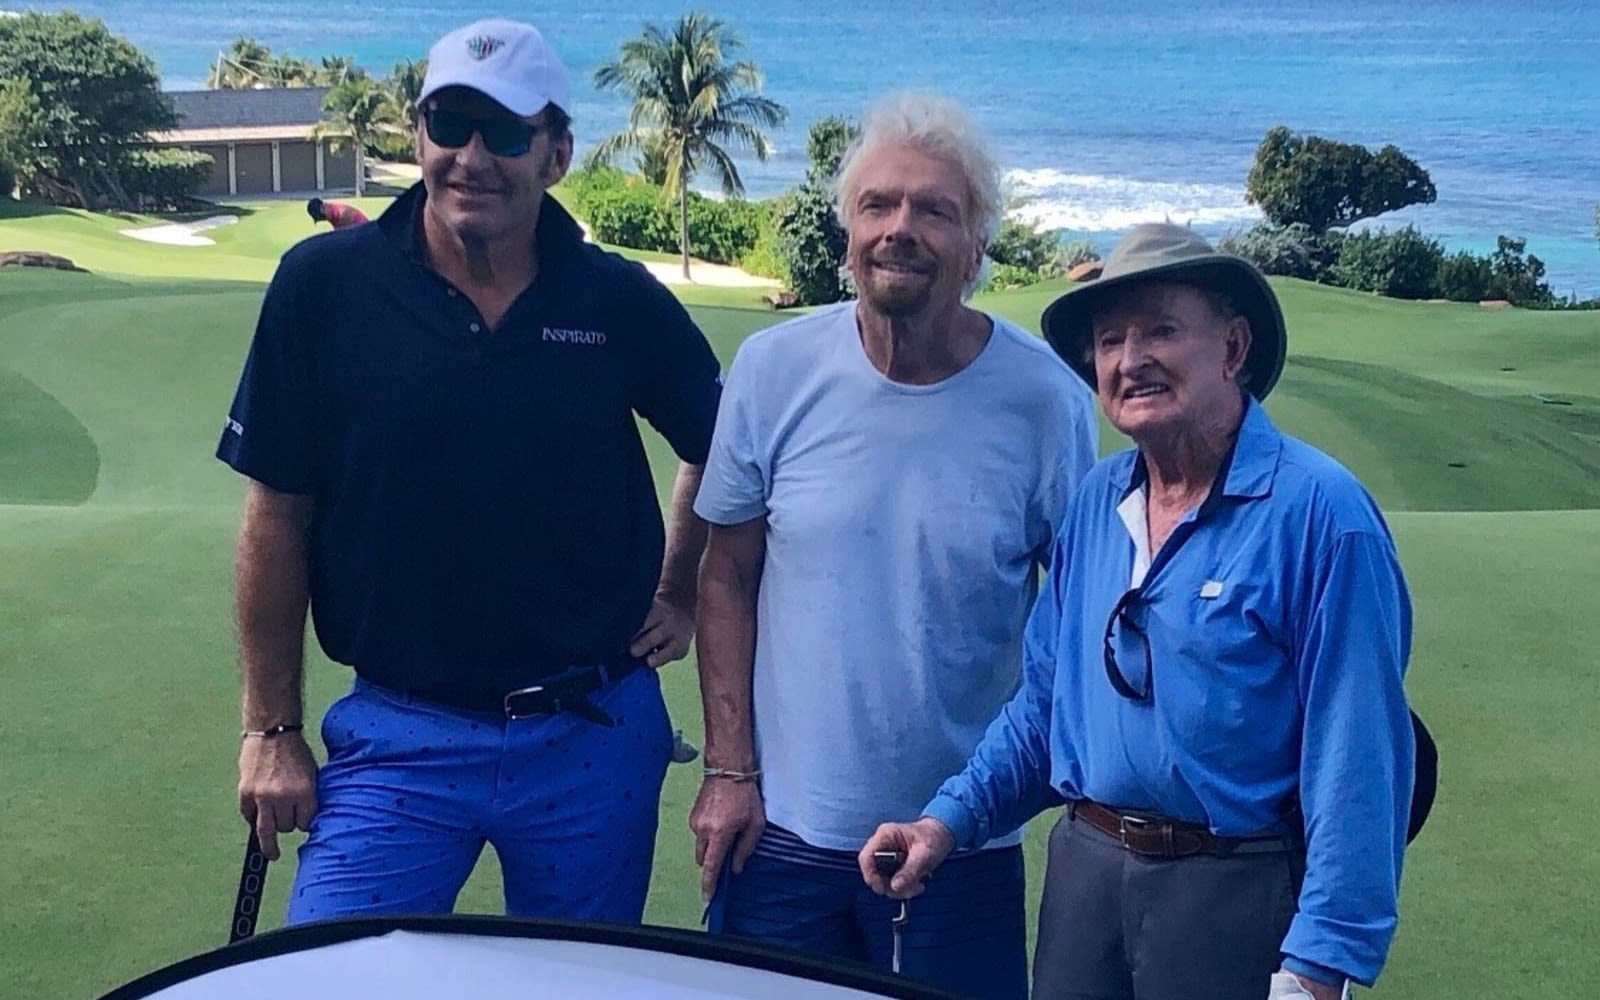 Richard Branson standing with Rod Laver and Nick Faldo on the golf course at Necker Island